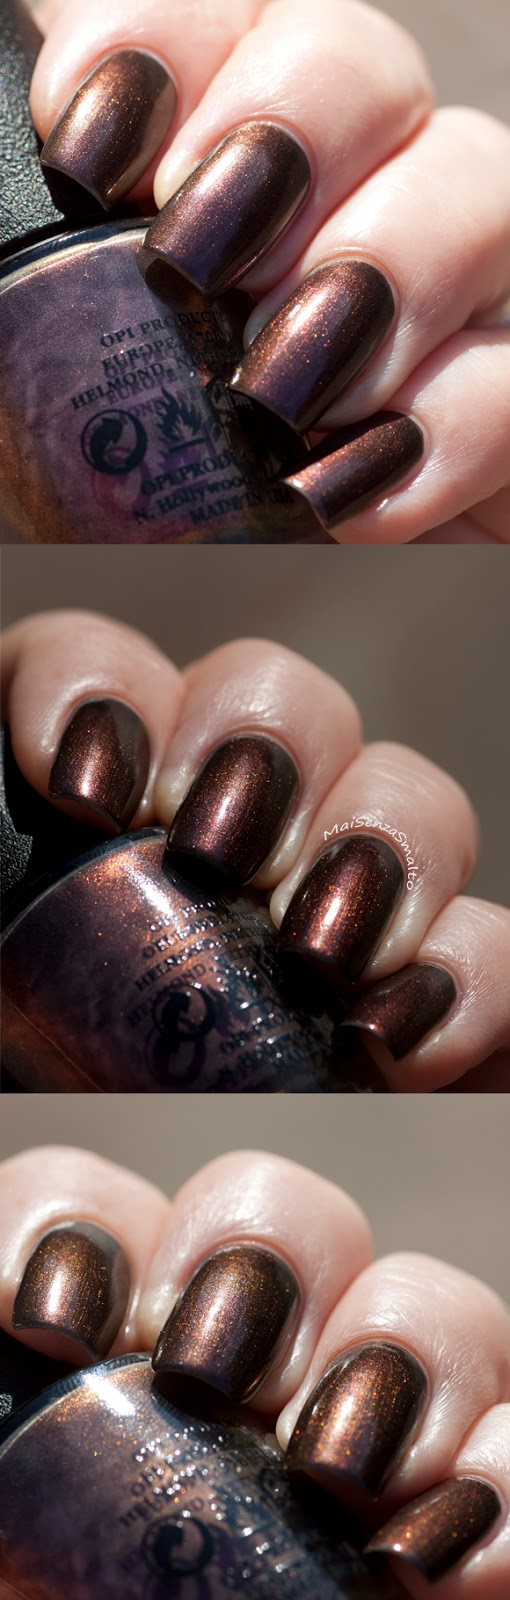 OPI Muir Muir on the wall color shift (3 pics)